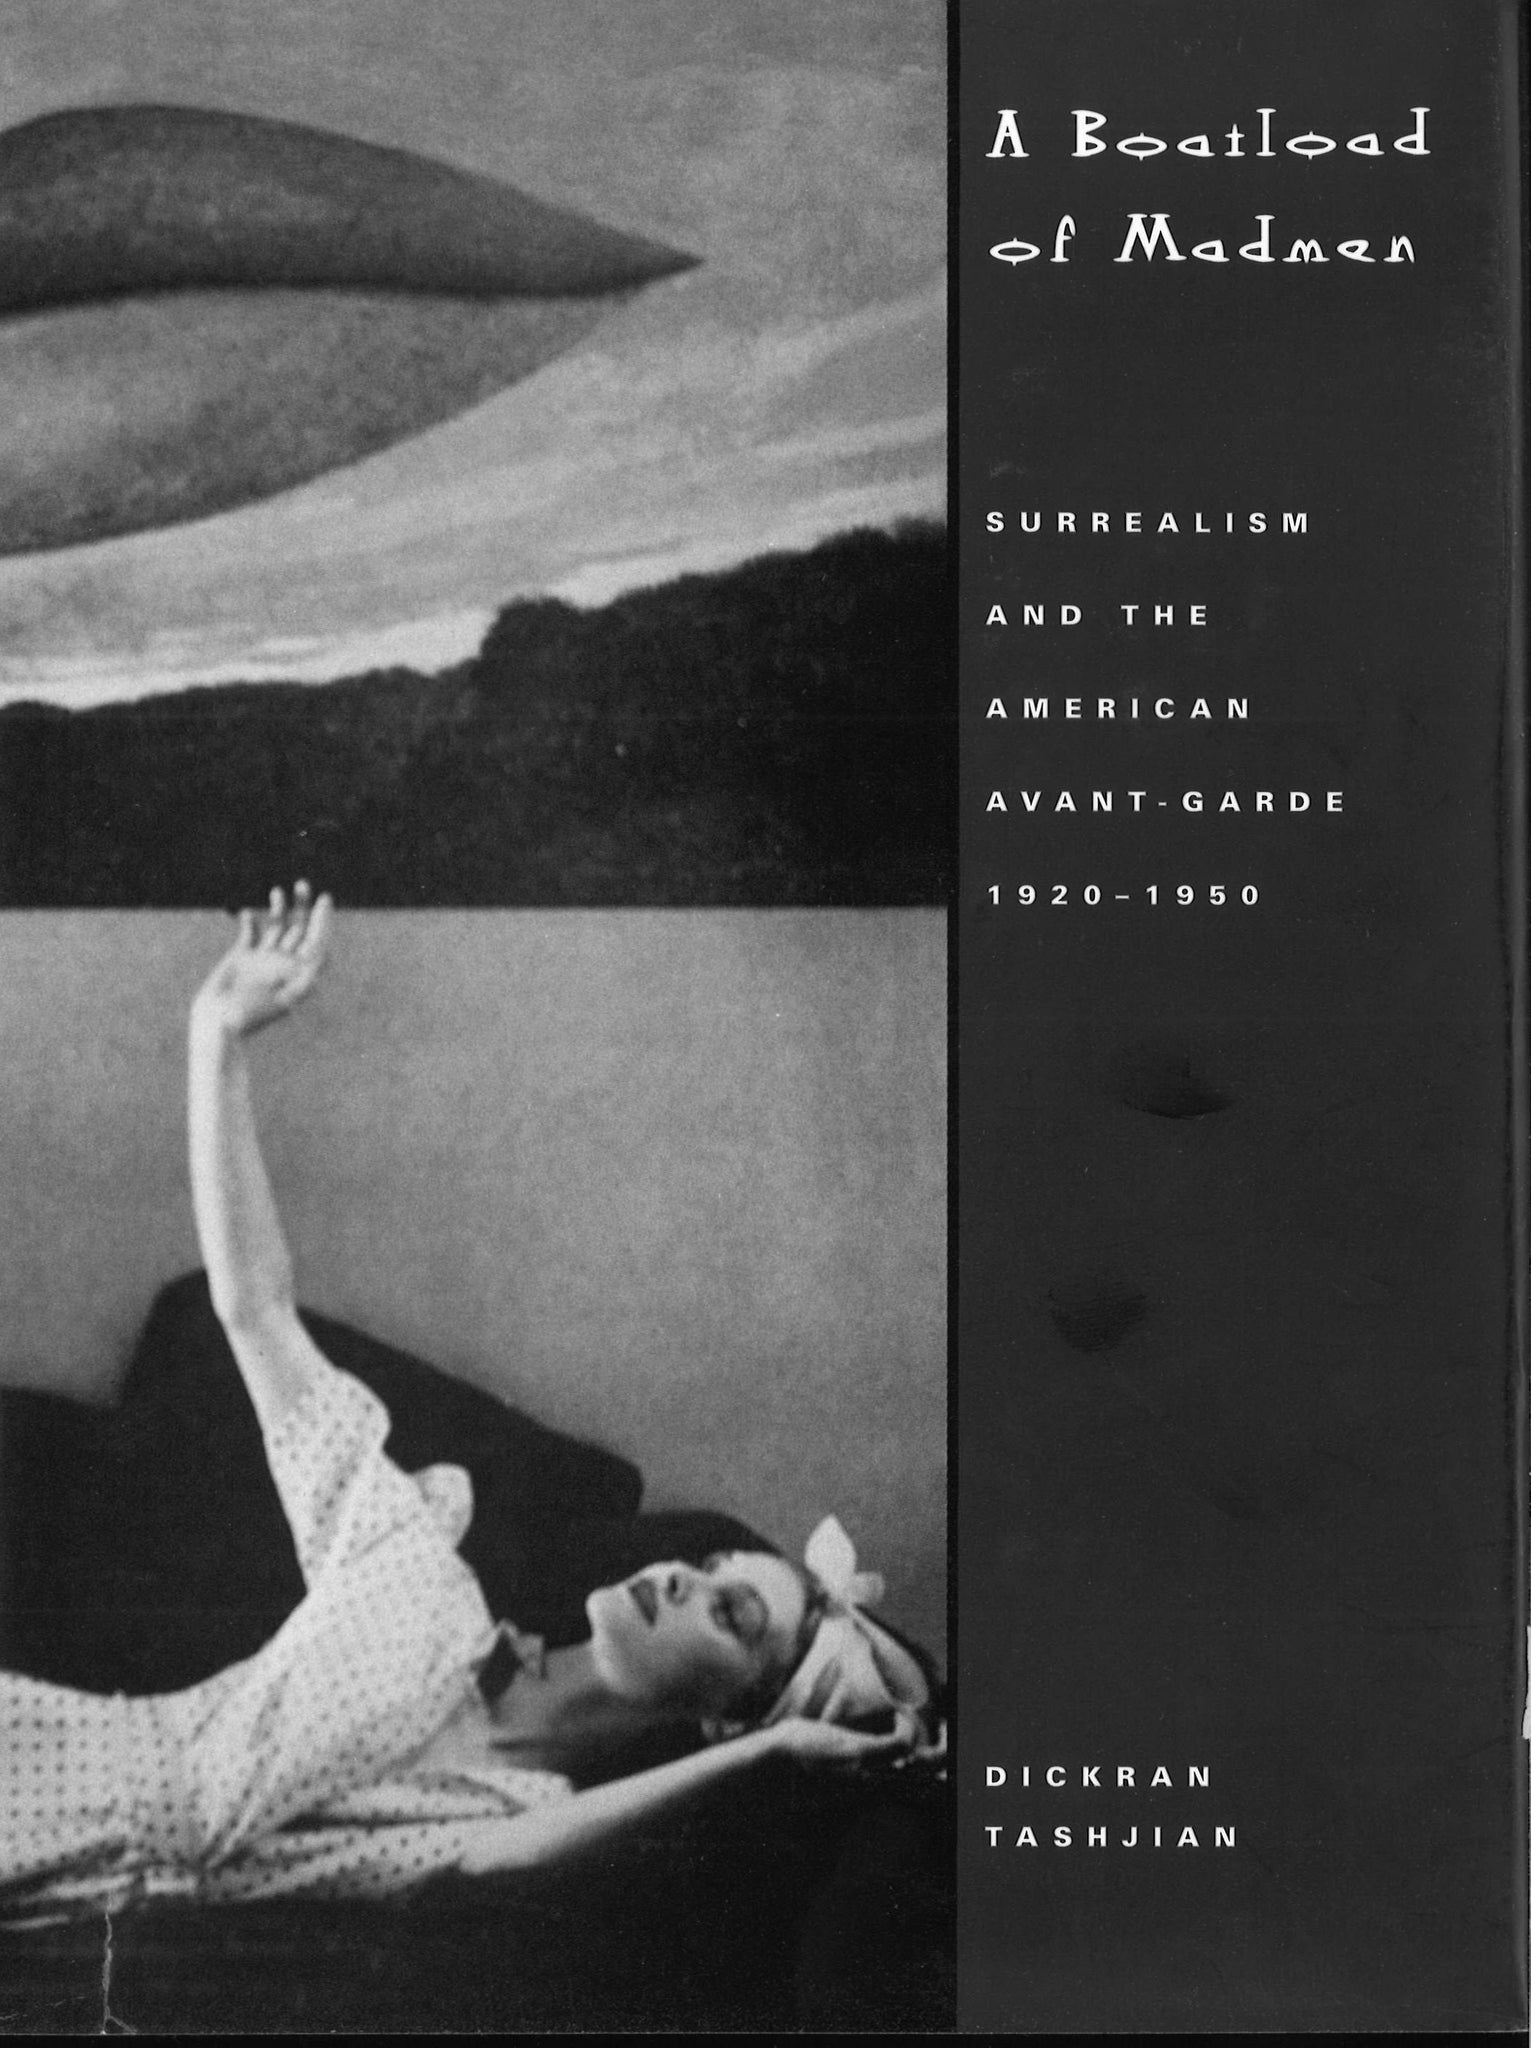 BOATLOAD OF MADMEN: Surrealism and the American Avant-Garde, 1920-1950